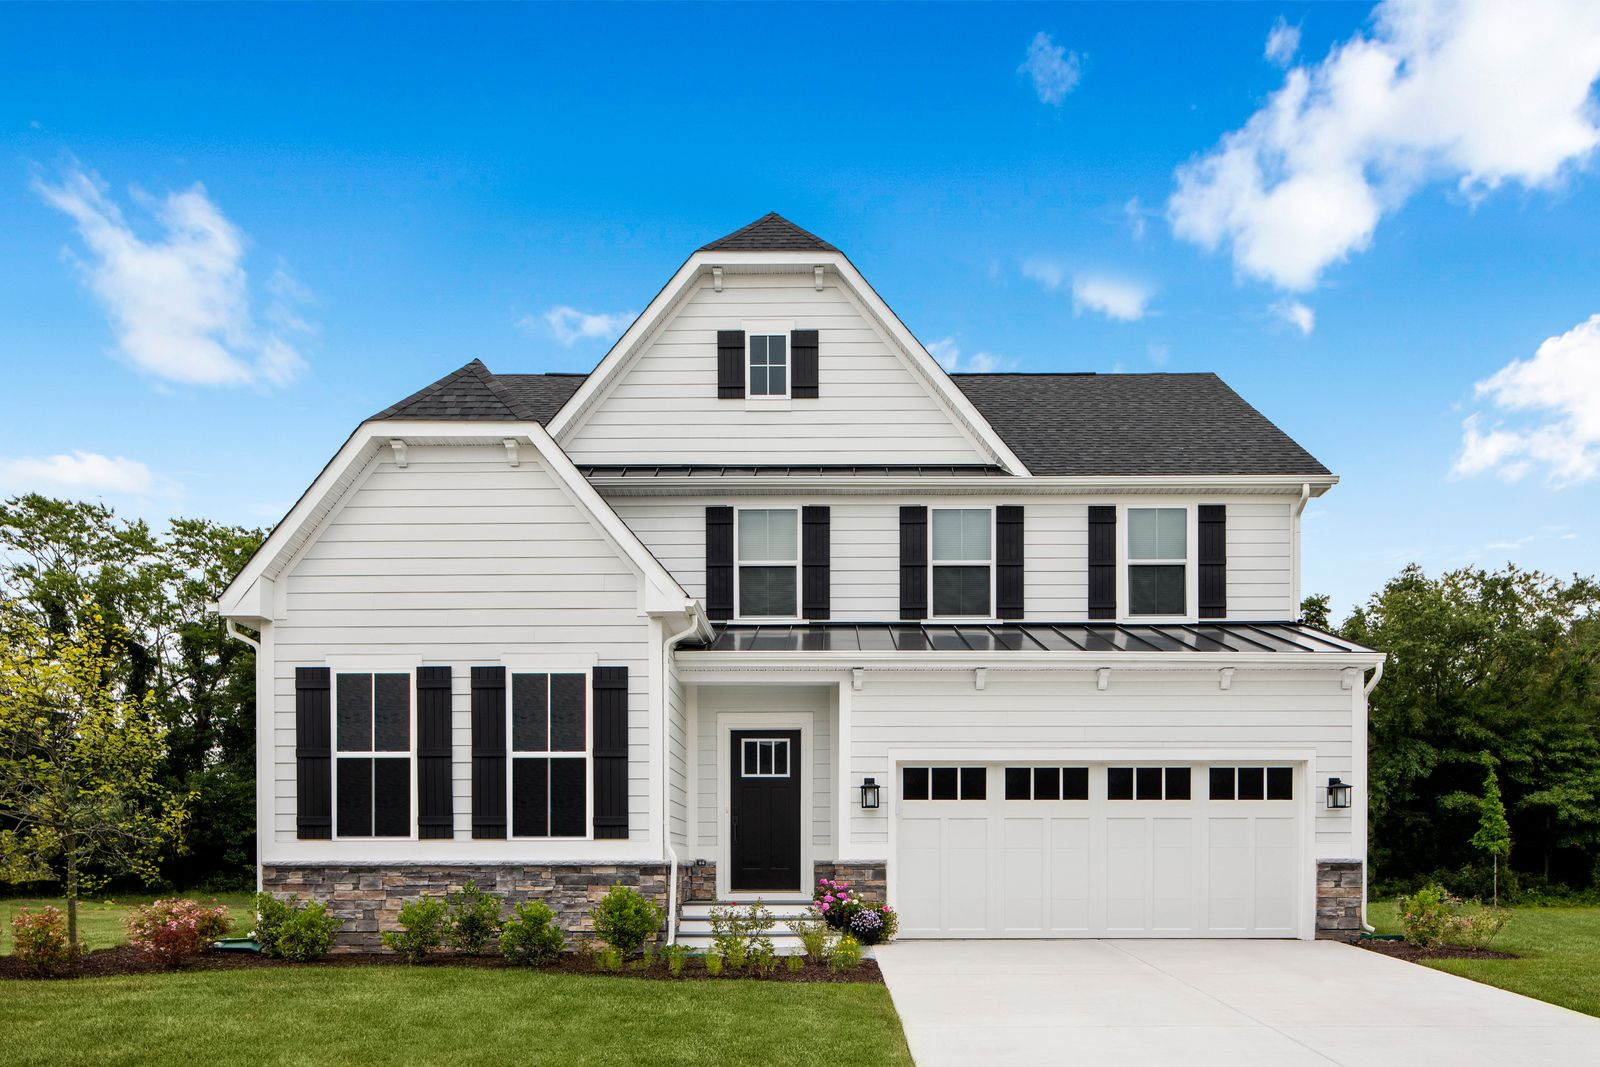 AUTUMN VIEW - NOW SELLING FROM UPPER $400S:Scenic community located at Pettus Rd & Nolensville Rd w/ private homesites, upgraded features, & 1st floor owner's suite options minutes from conveniences.Schedule a visit today!